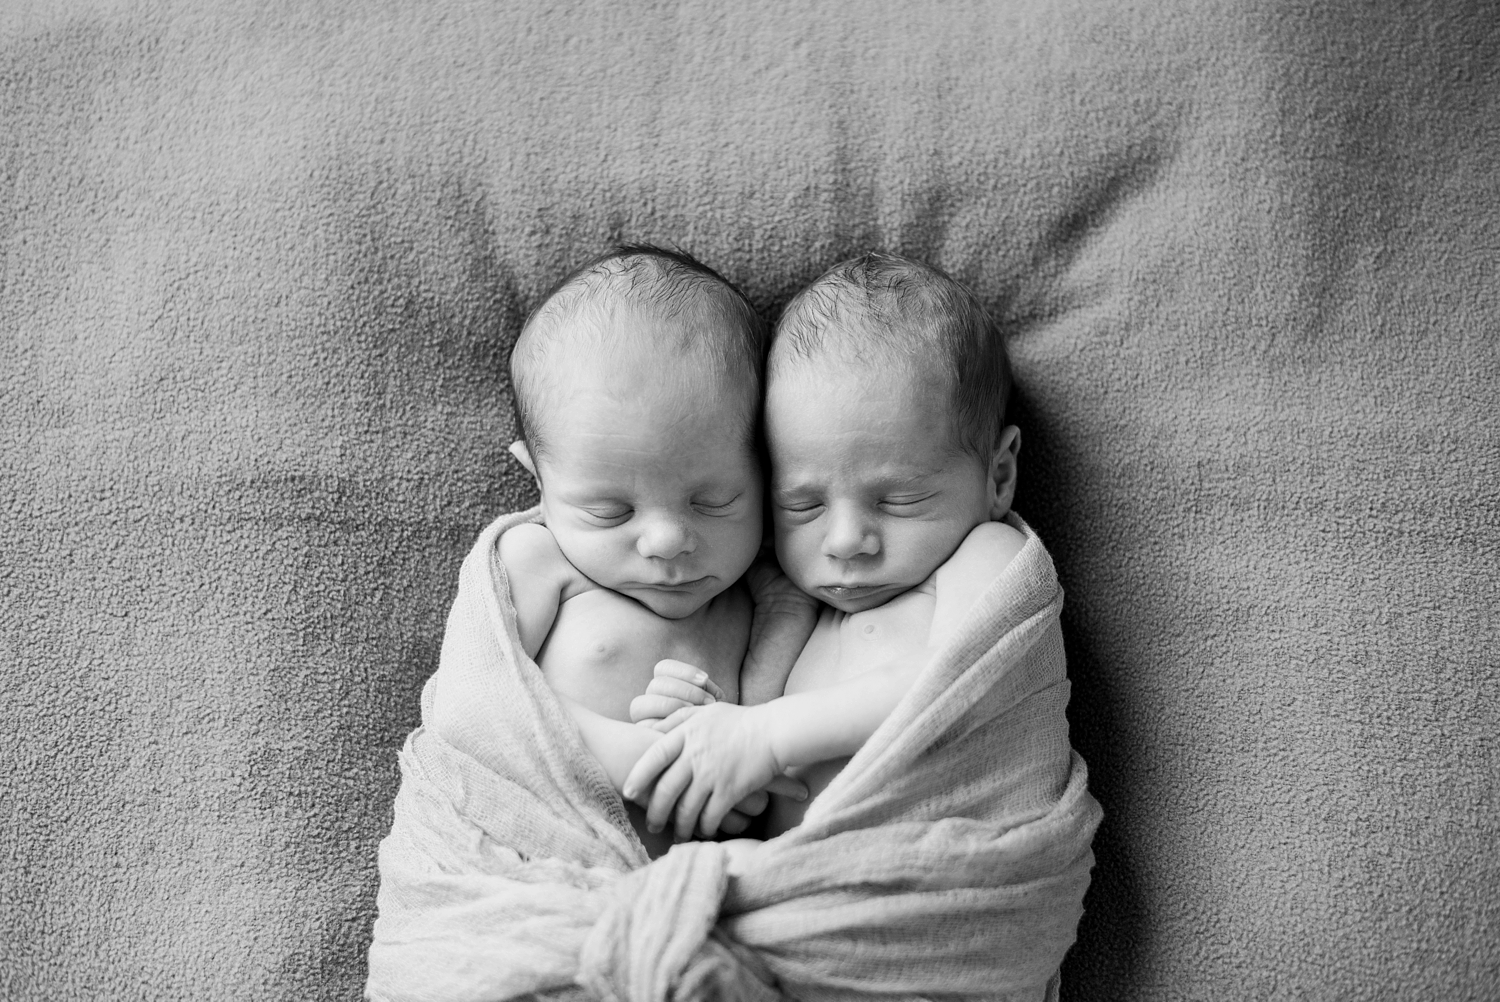 portland-twin-boys-newborn-session-shelley-marie-photo-134-2_cr.jpg